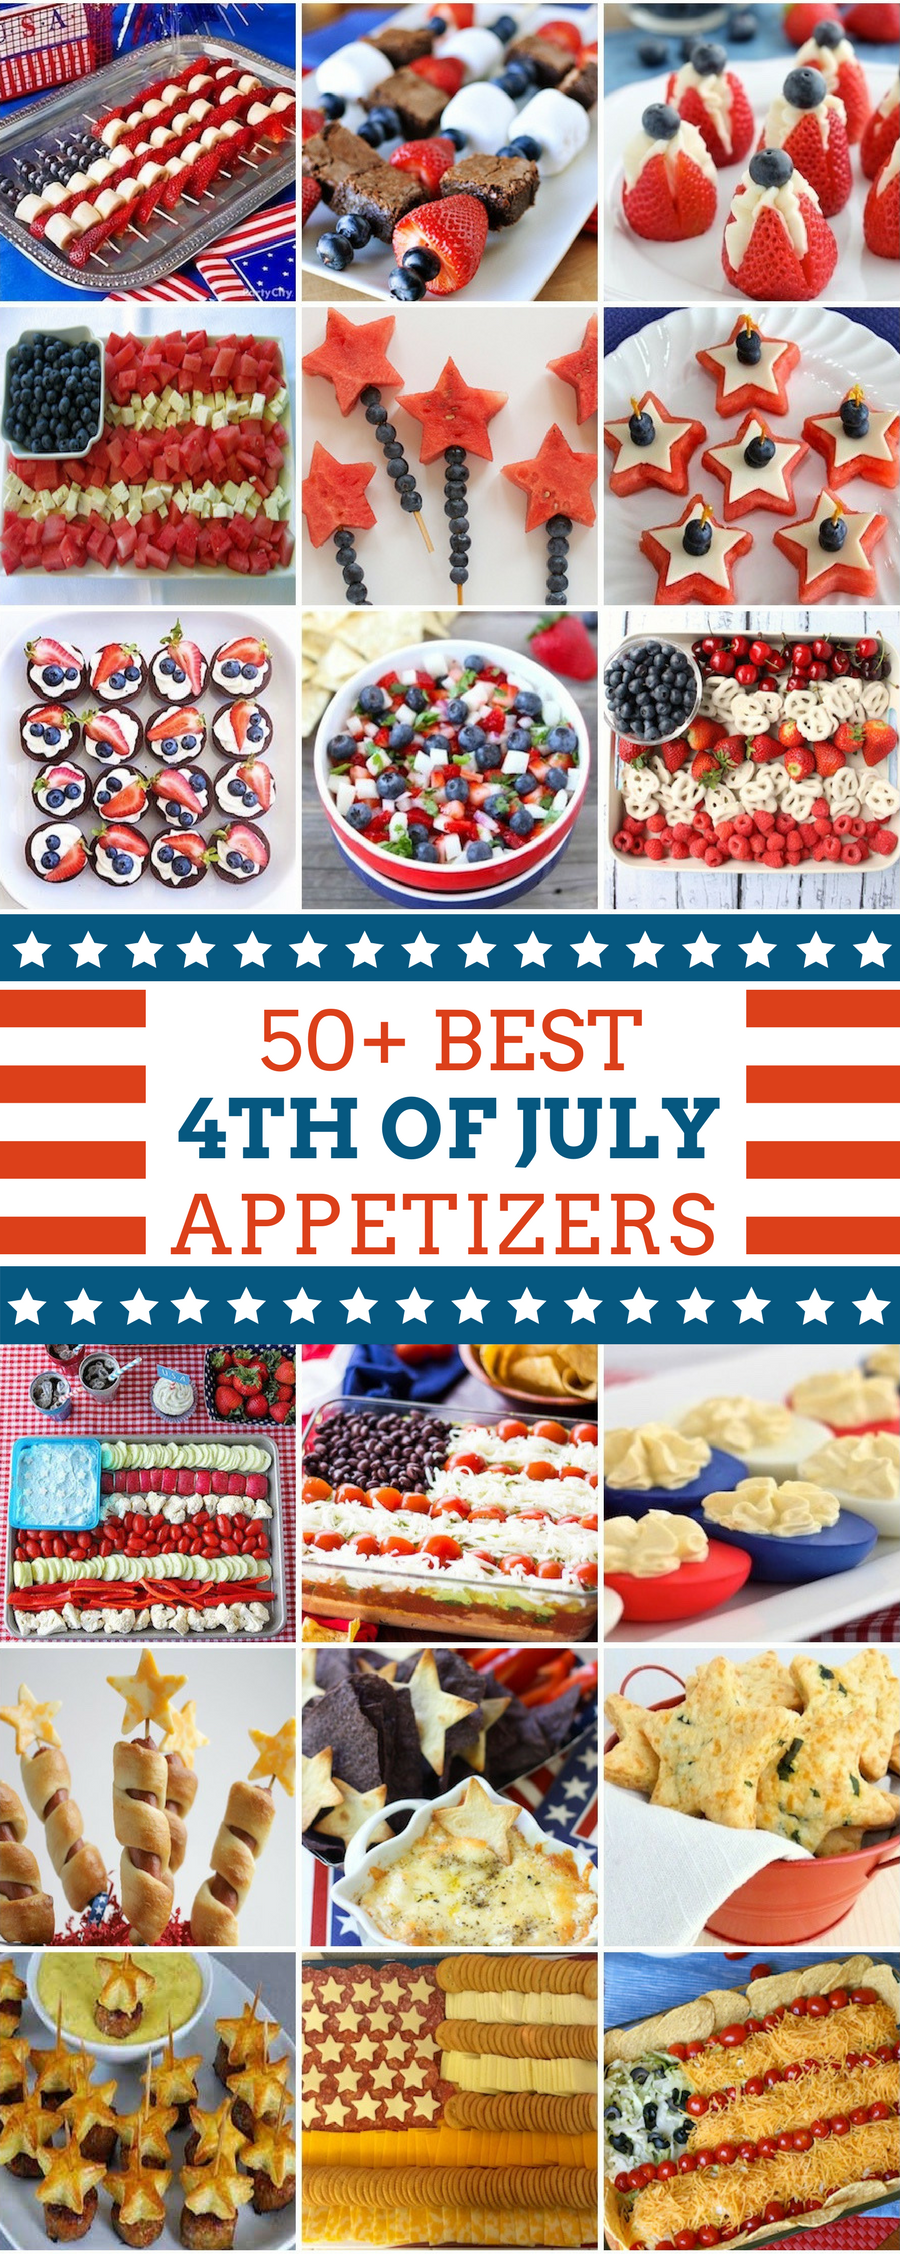 50 best 4th of july appetizers prudent penny pincher for 4th of july appetizers and desserts